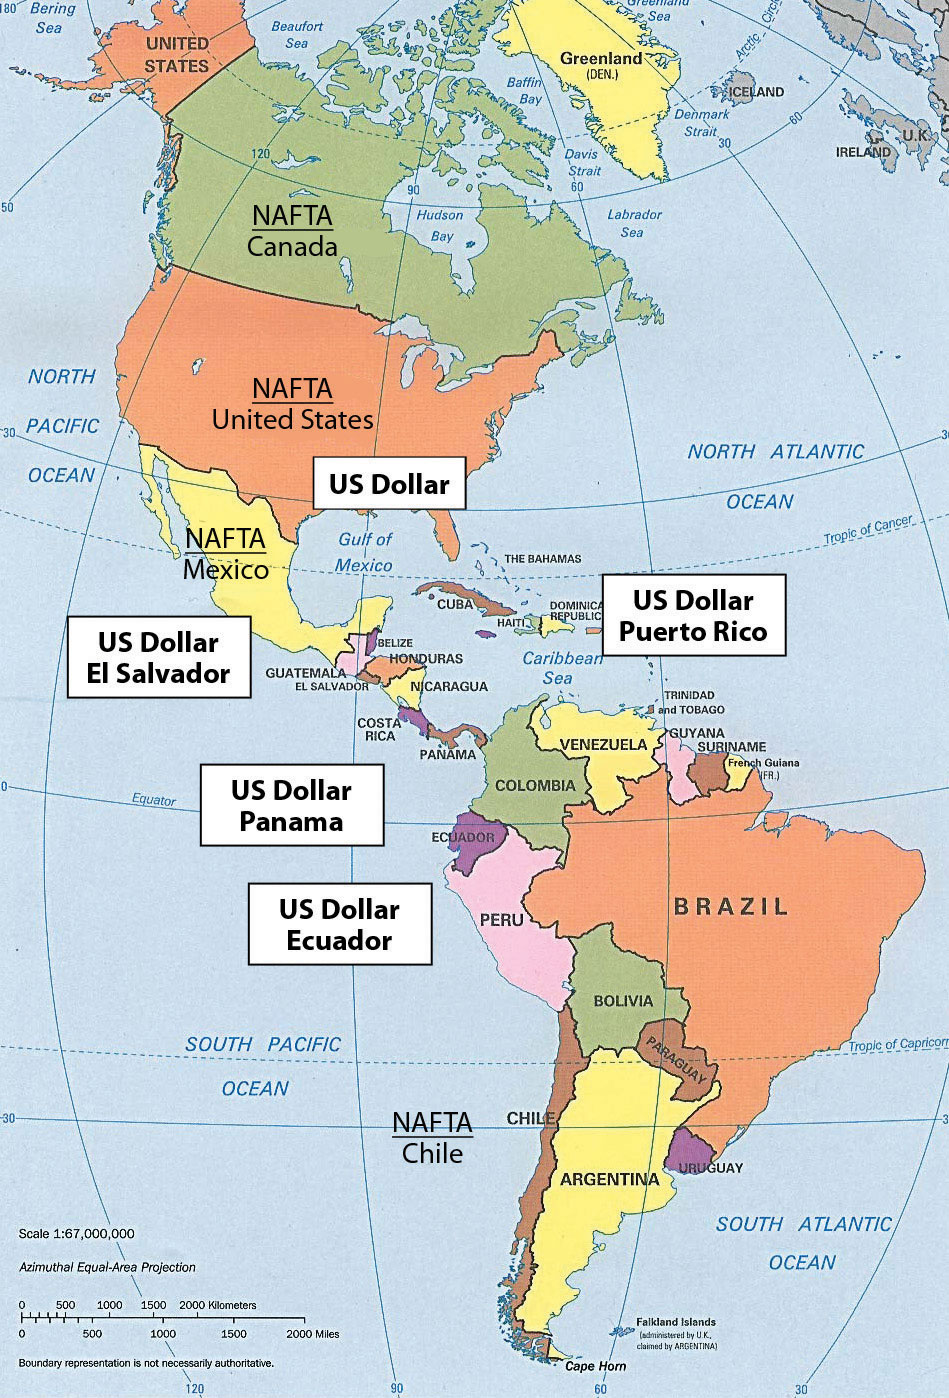 South America - Us map with regions labeled